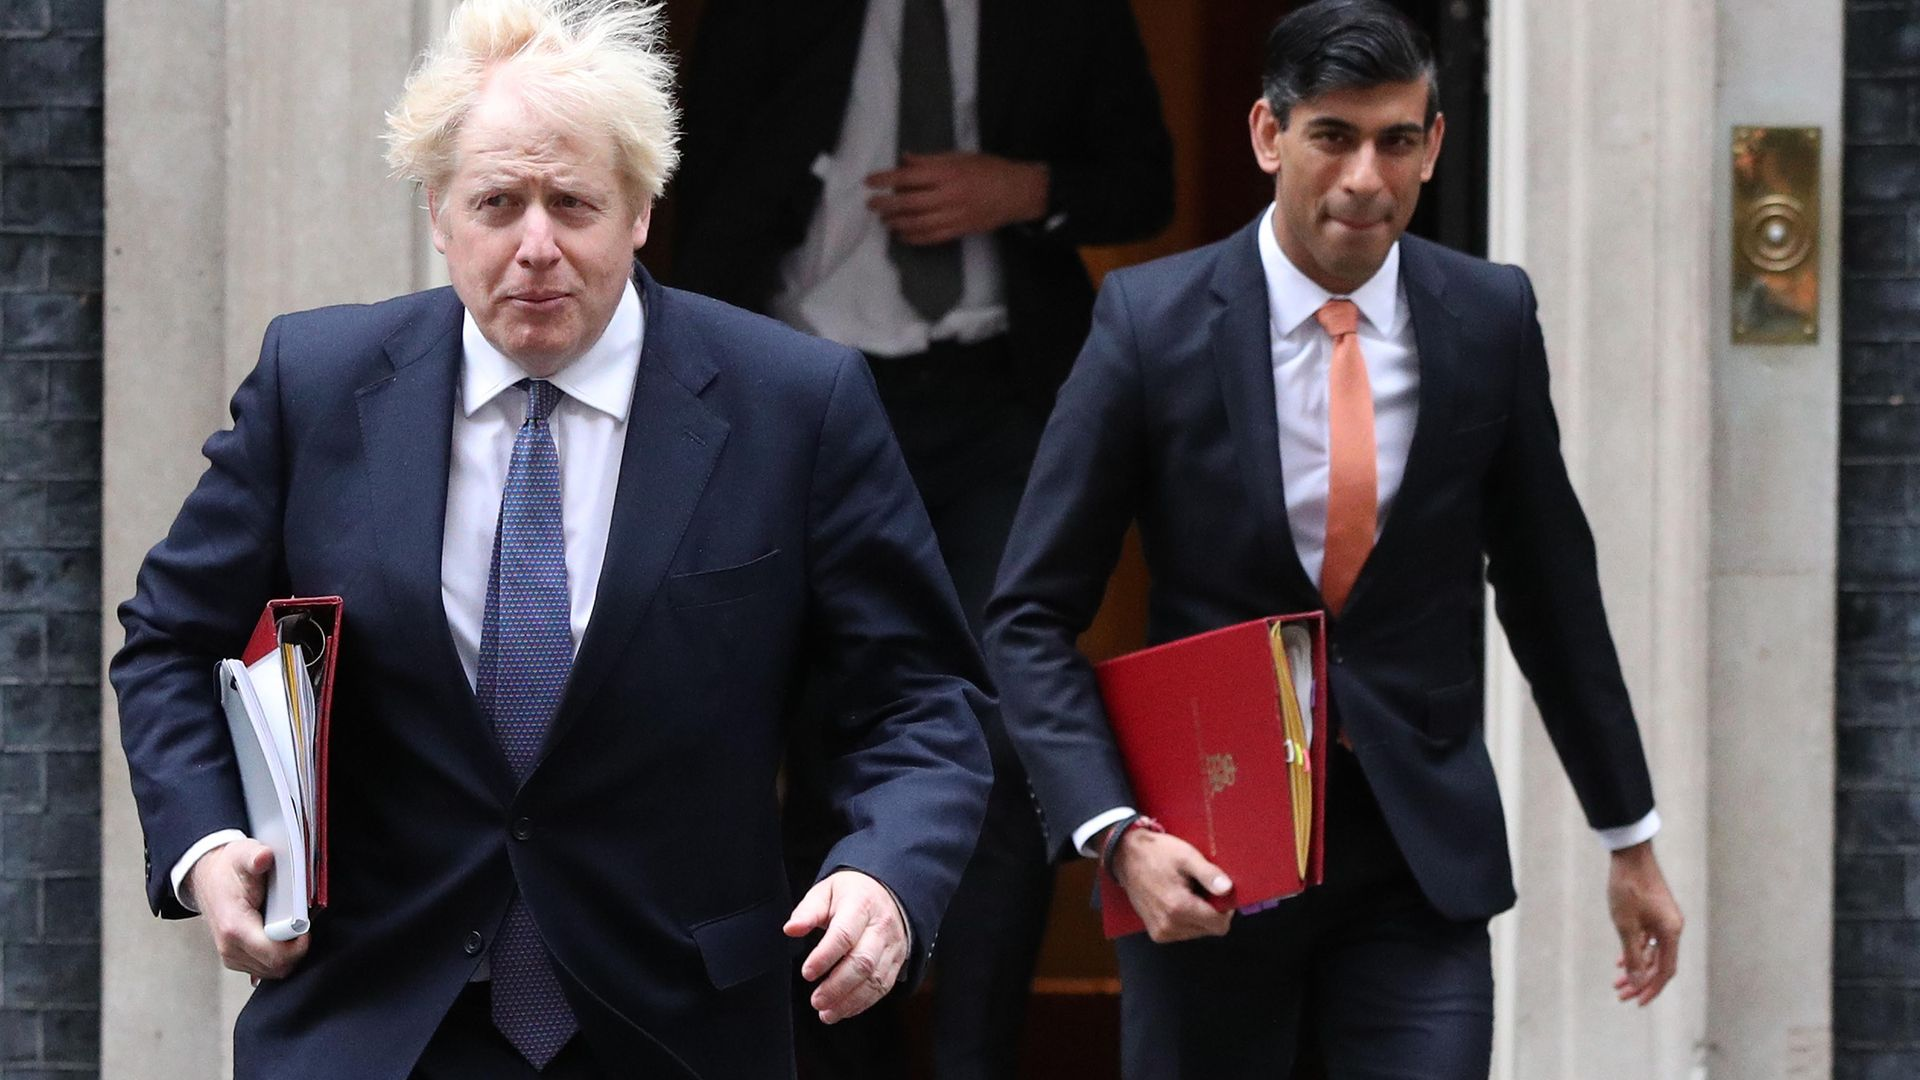 Prime minister Boris Johnson (left) and chancellor Rishi Sunak leave 10 Downing Street London, ahead of a Cabinet meeting at the Foreign and Commonwealth Office. - Credit: PA